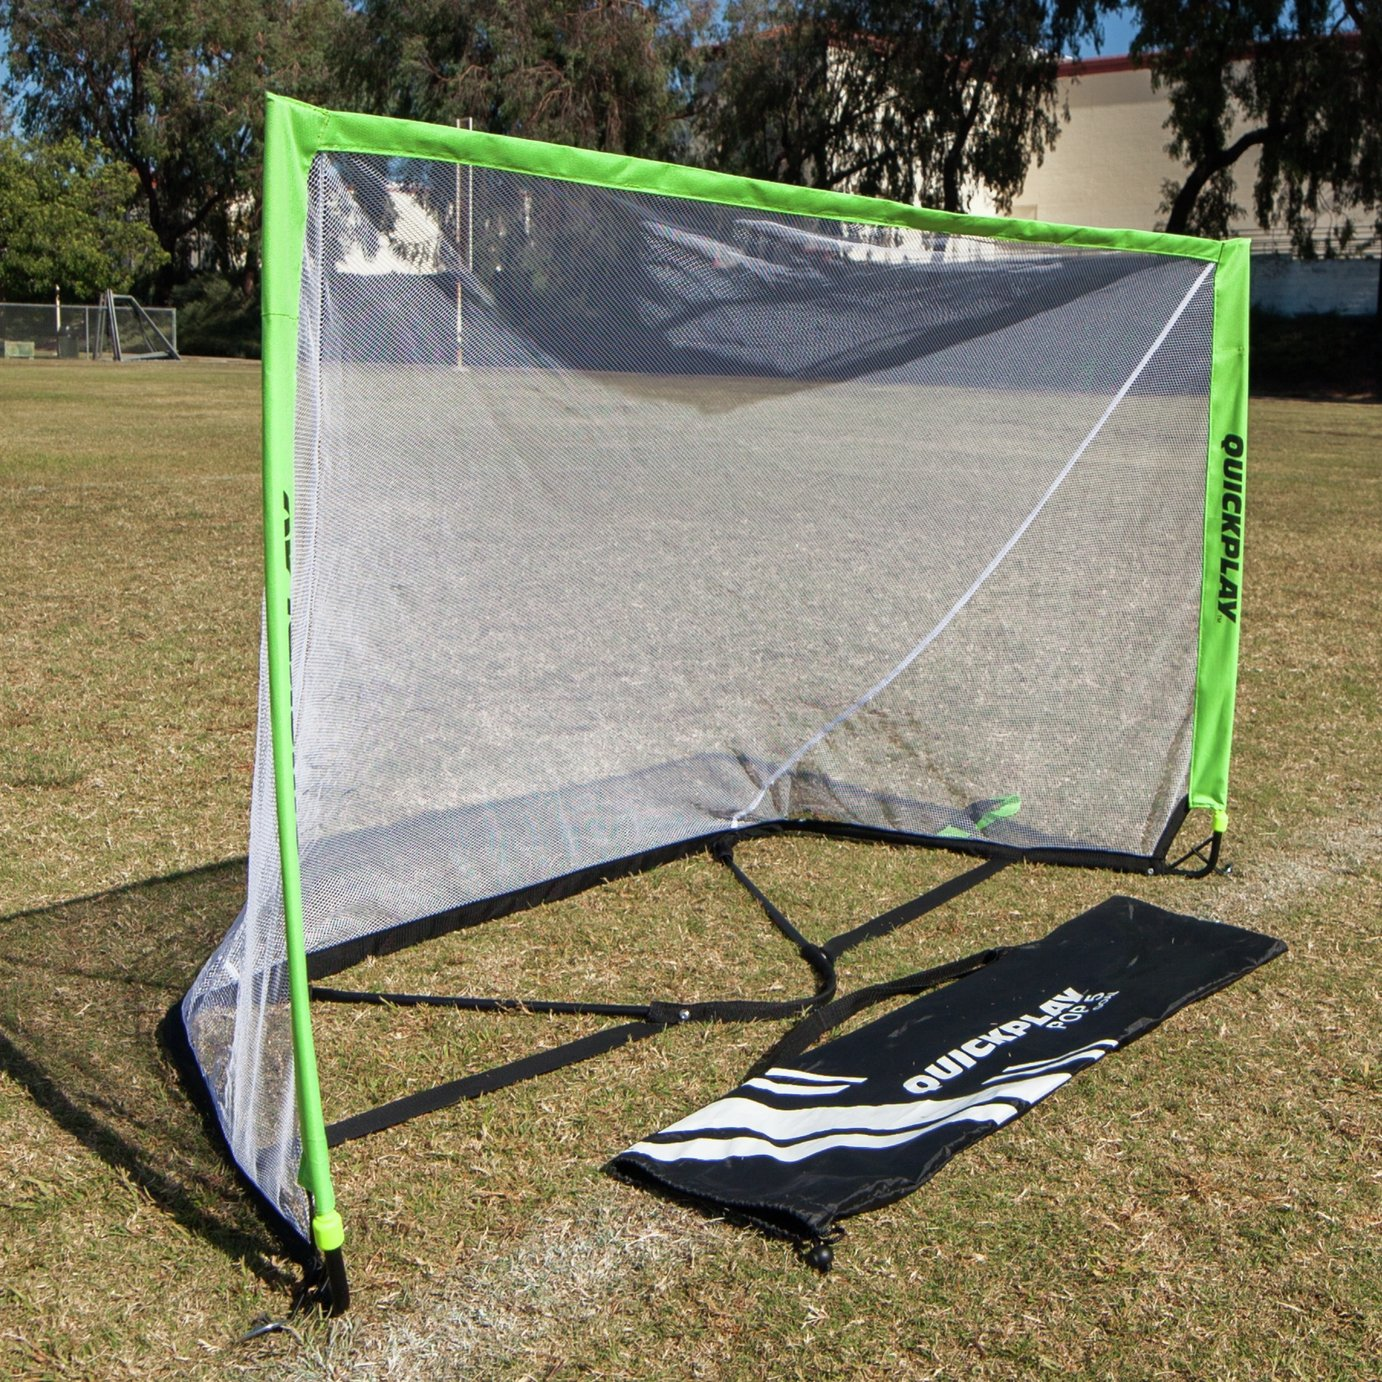 Kickster Quickplay Pop Up 5 x 3ft Football Goal